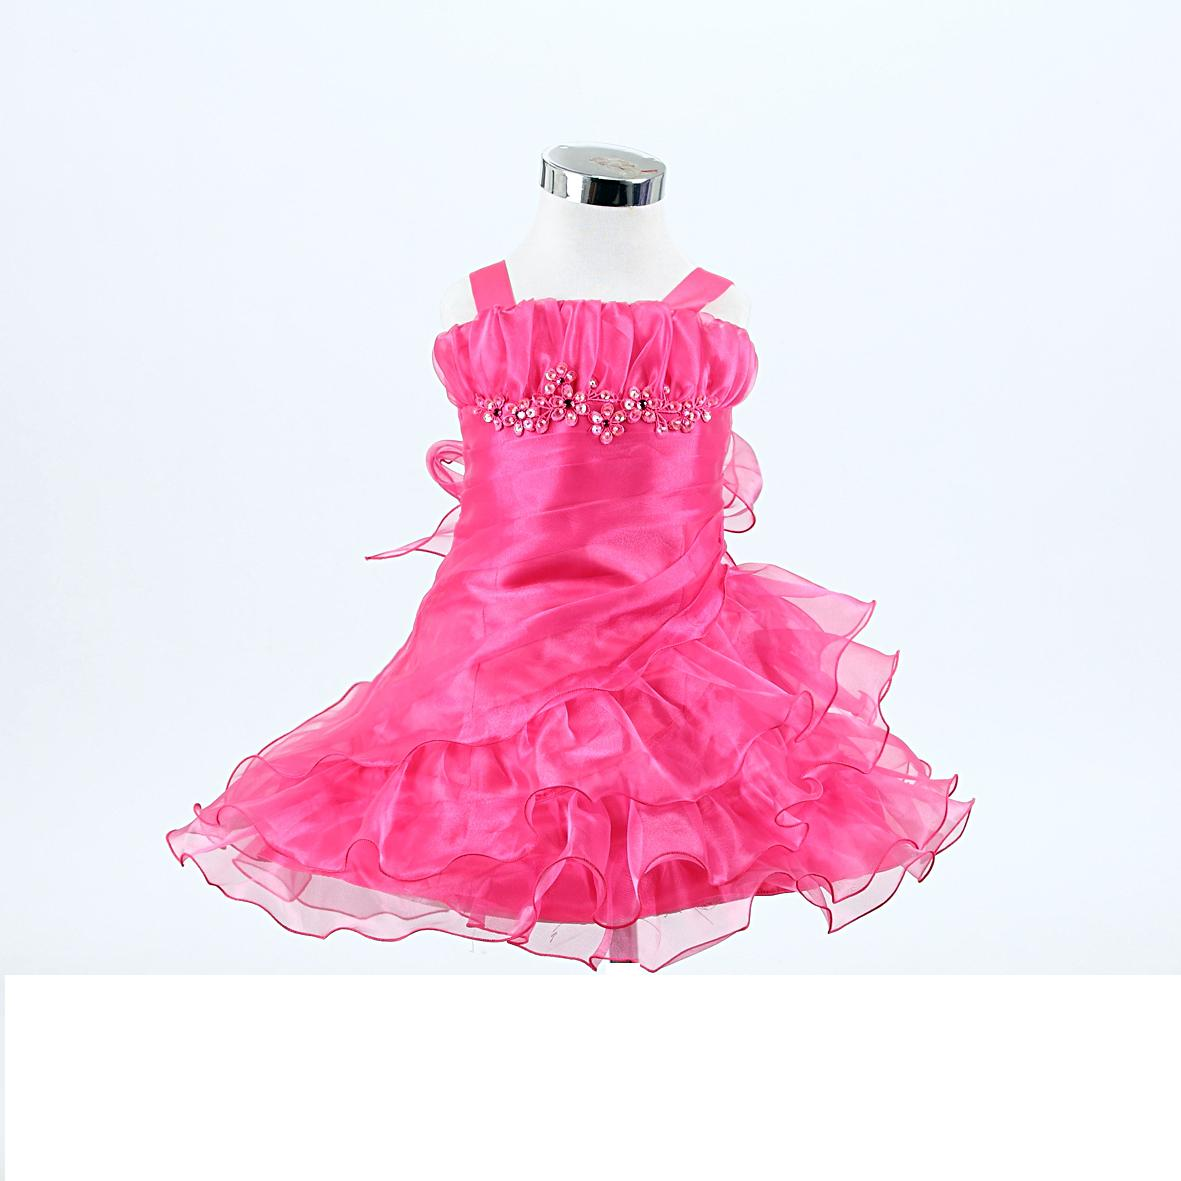 fuschia frilly baby dress